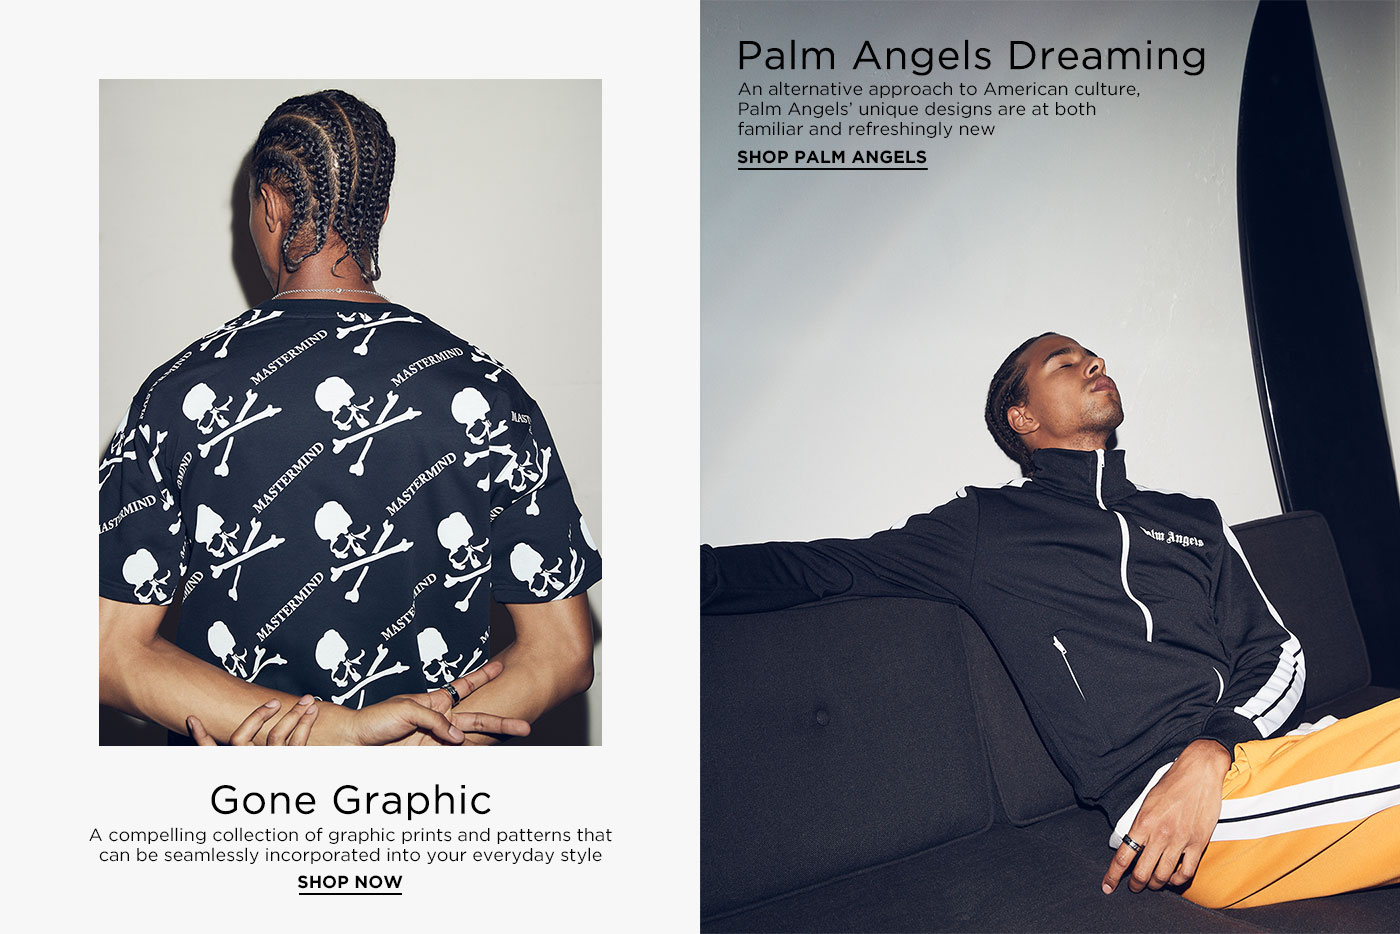 Palm Angels Dreaming 09/21/20 1